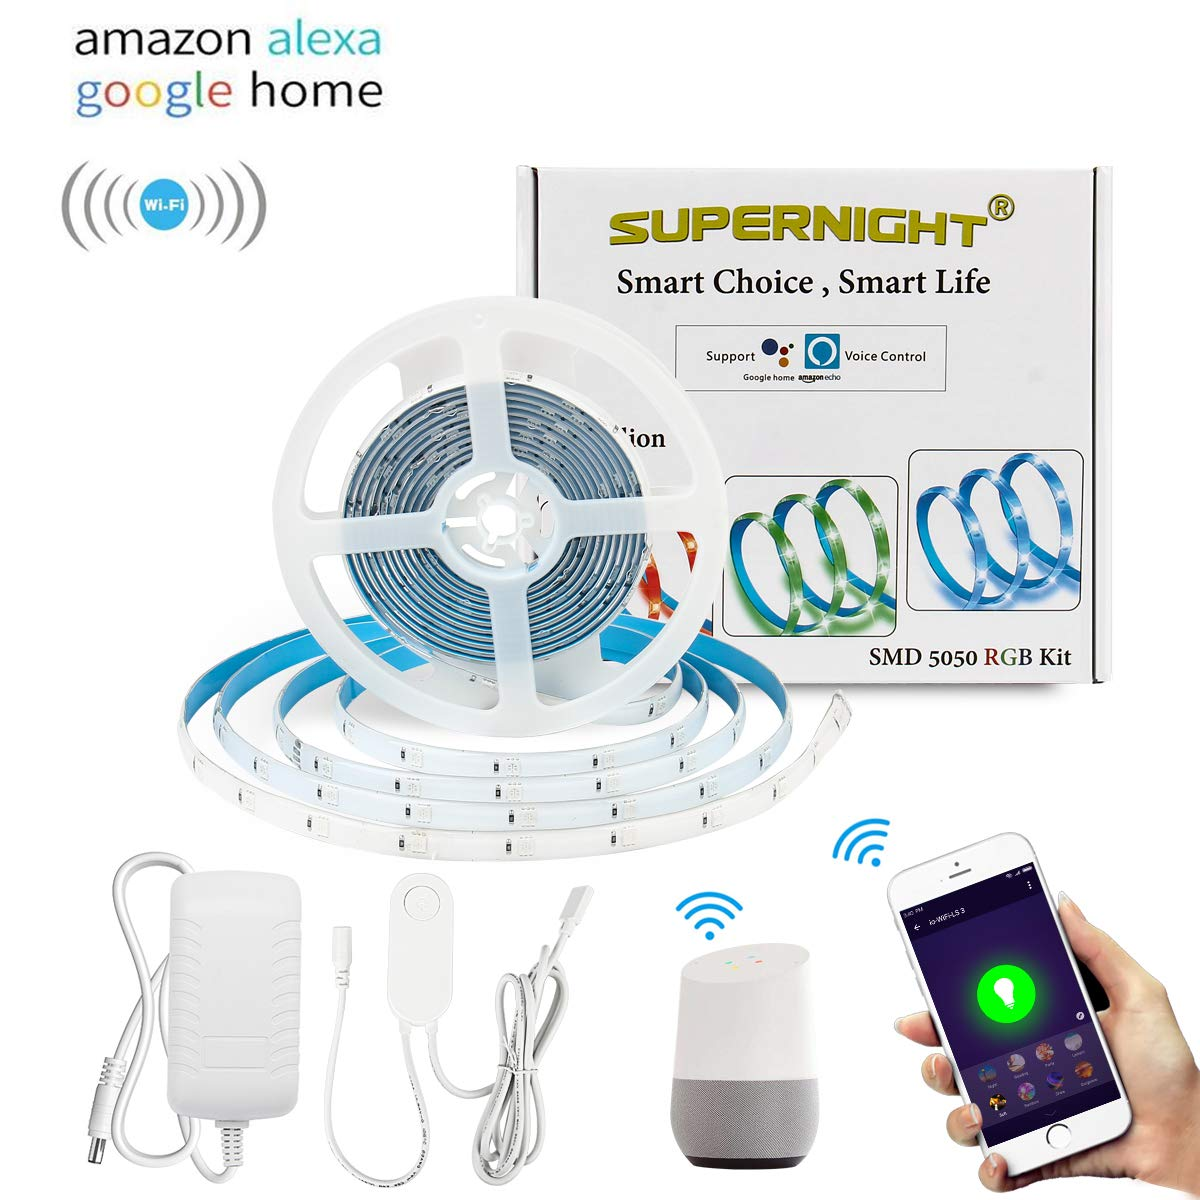 SUPERNIGHT Smart LED Strip Light, Compatible with Alexa & Google Super Bright WiFi Smartphone Controlled Waterproof Color Changing 16.4ft 5050 RGB Tape Light UL-Listed Power Supply, Voice Controller